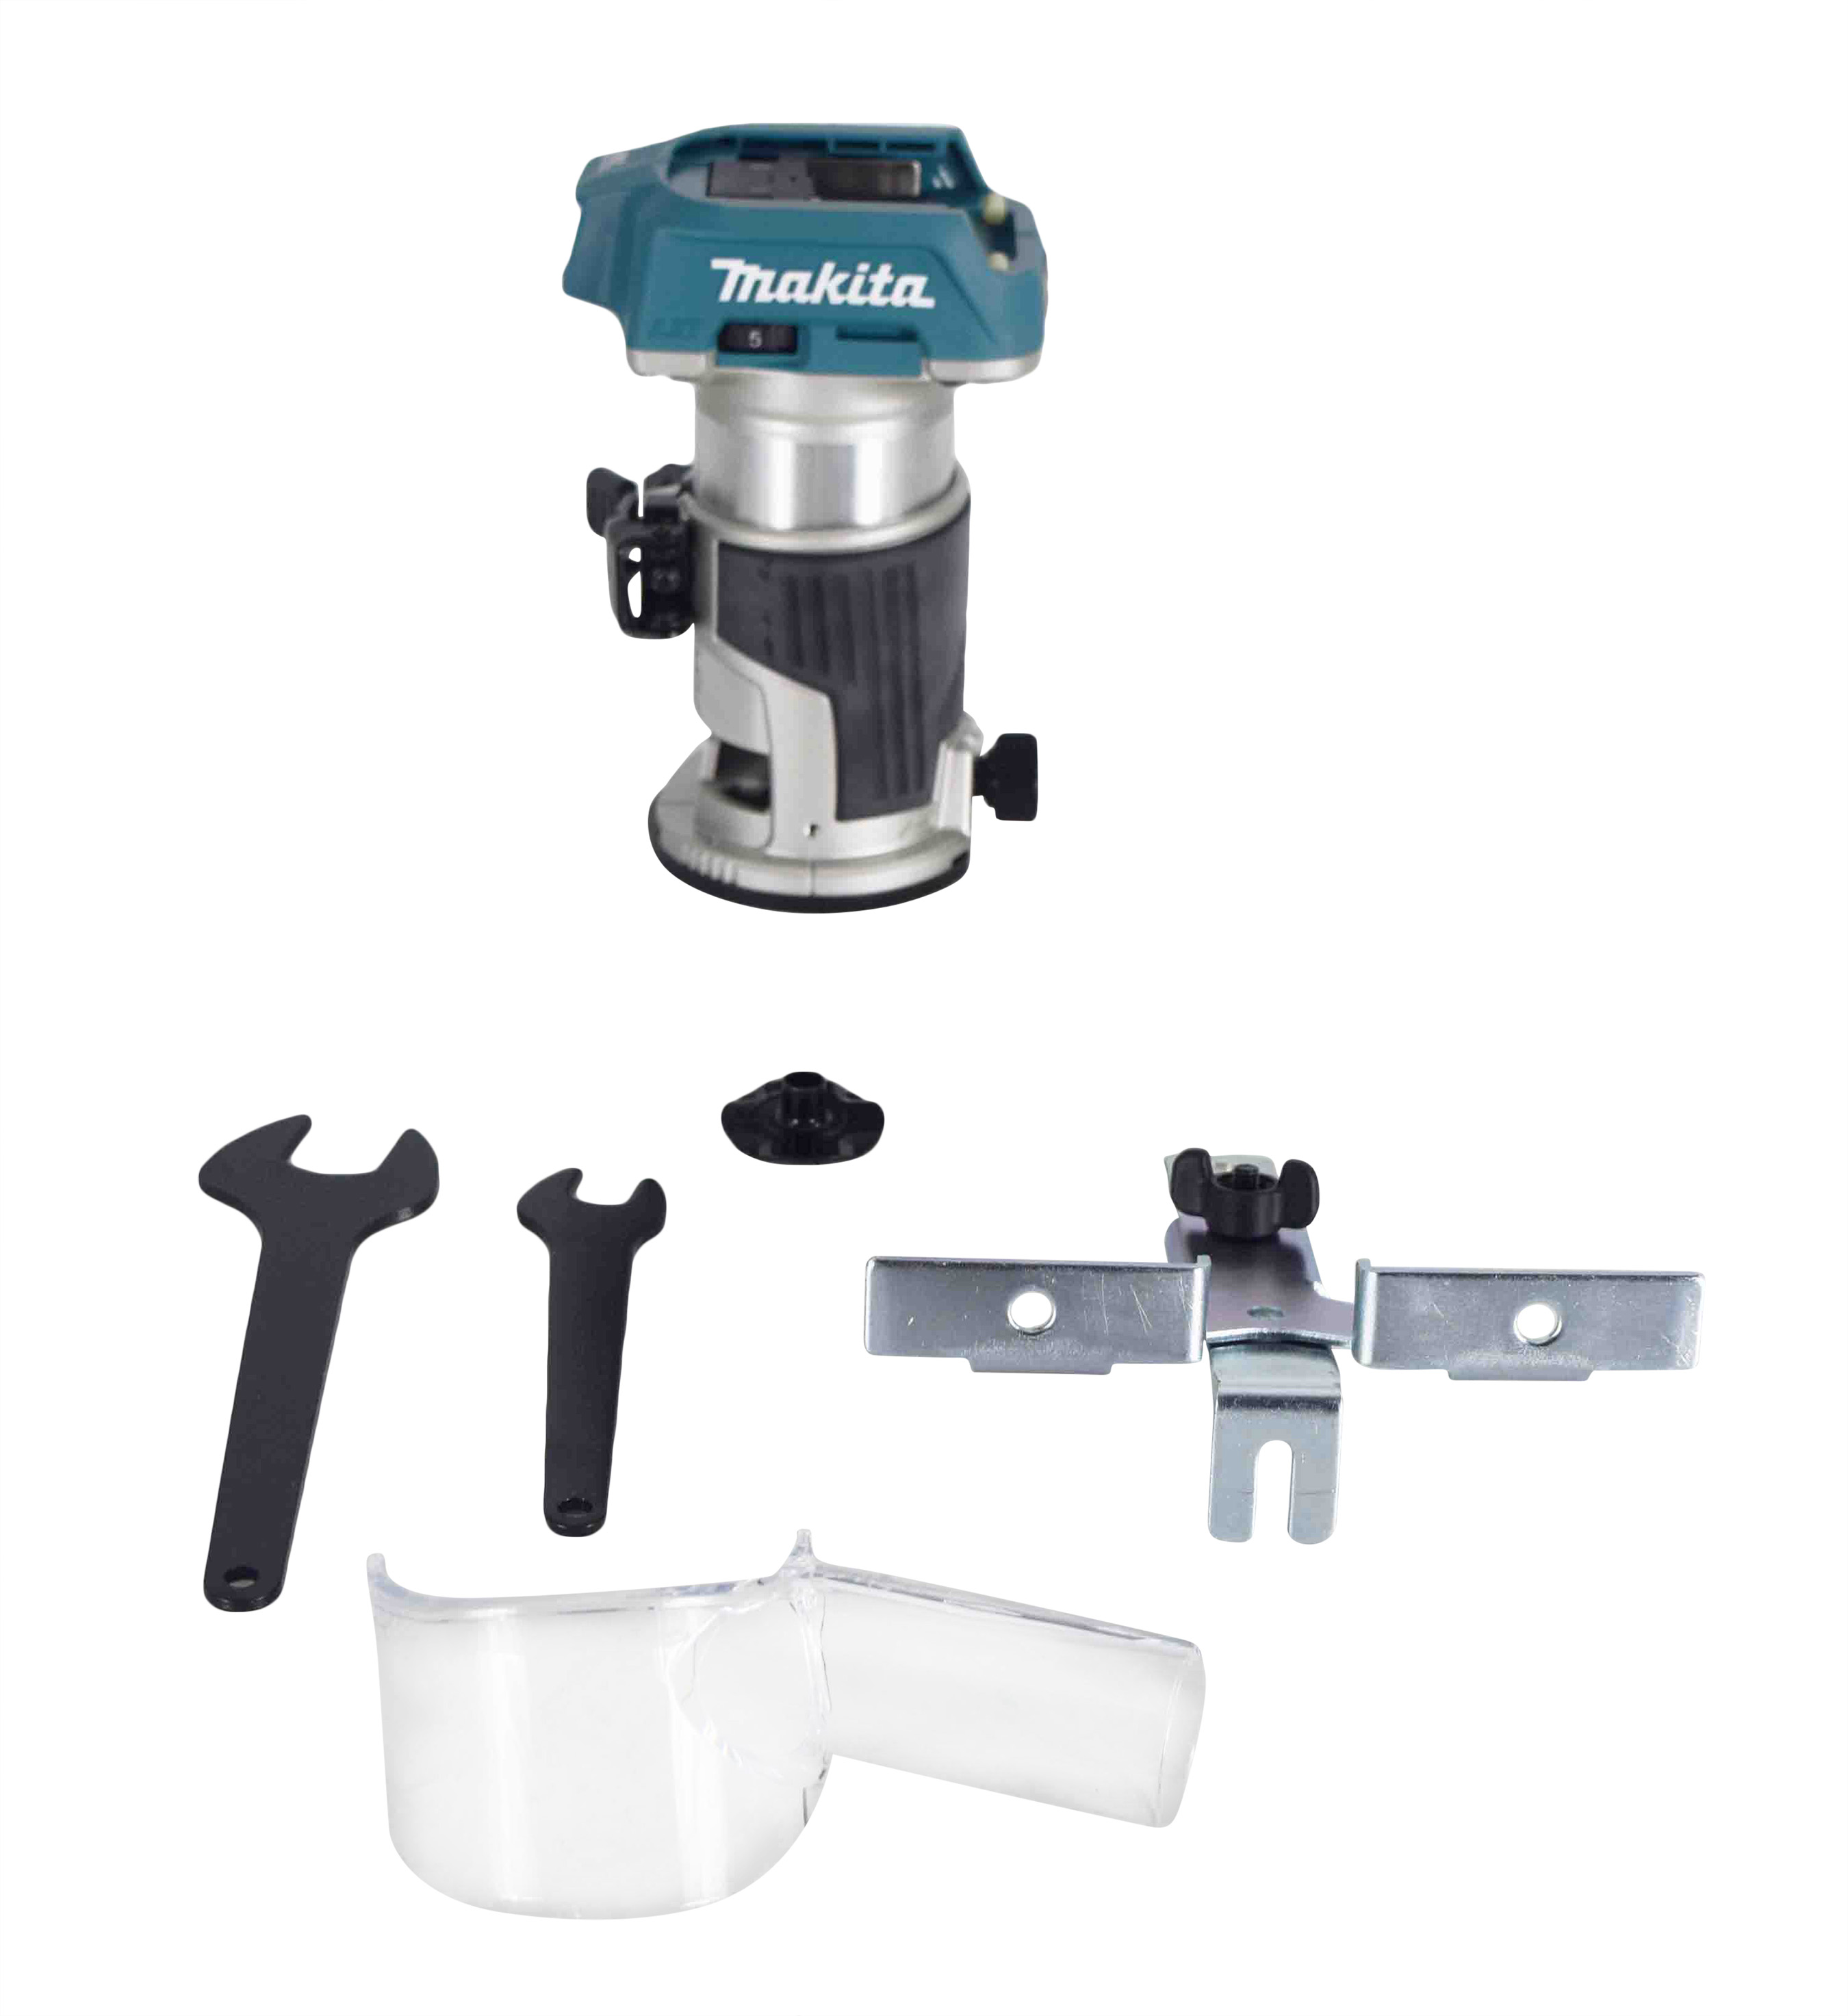 Makita XTR01Z Trim Router